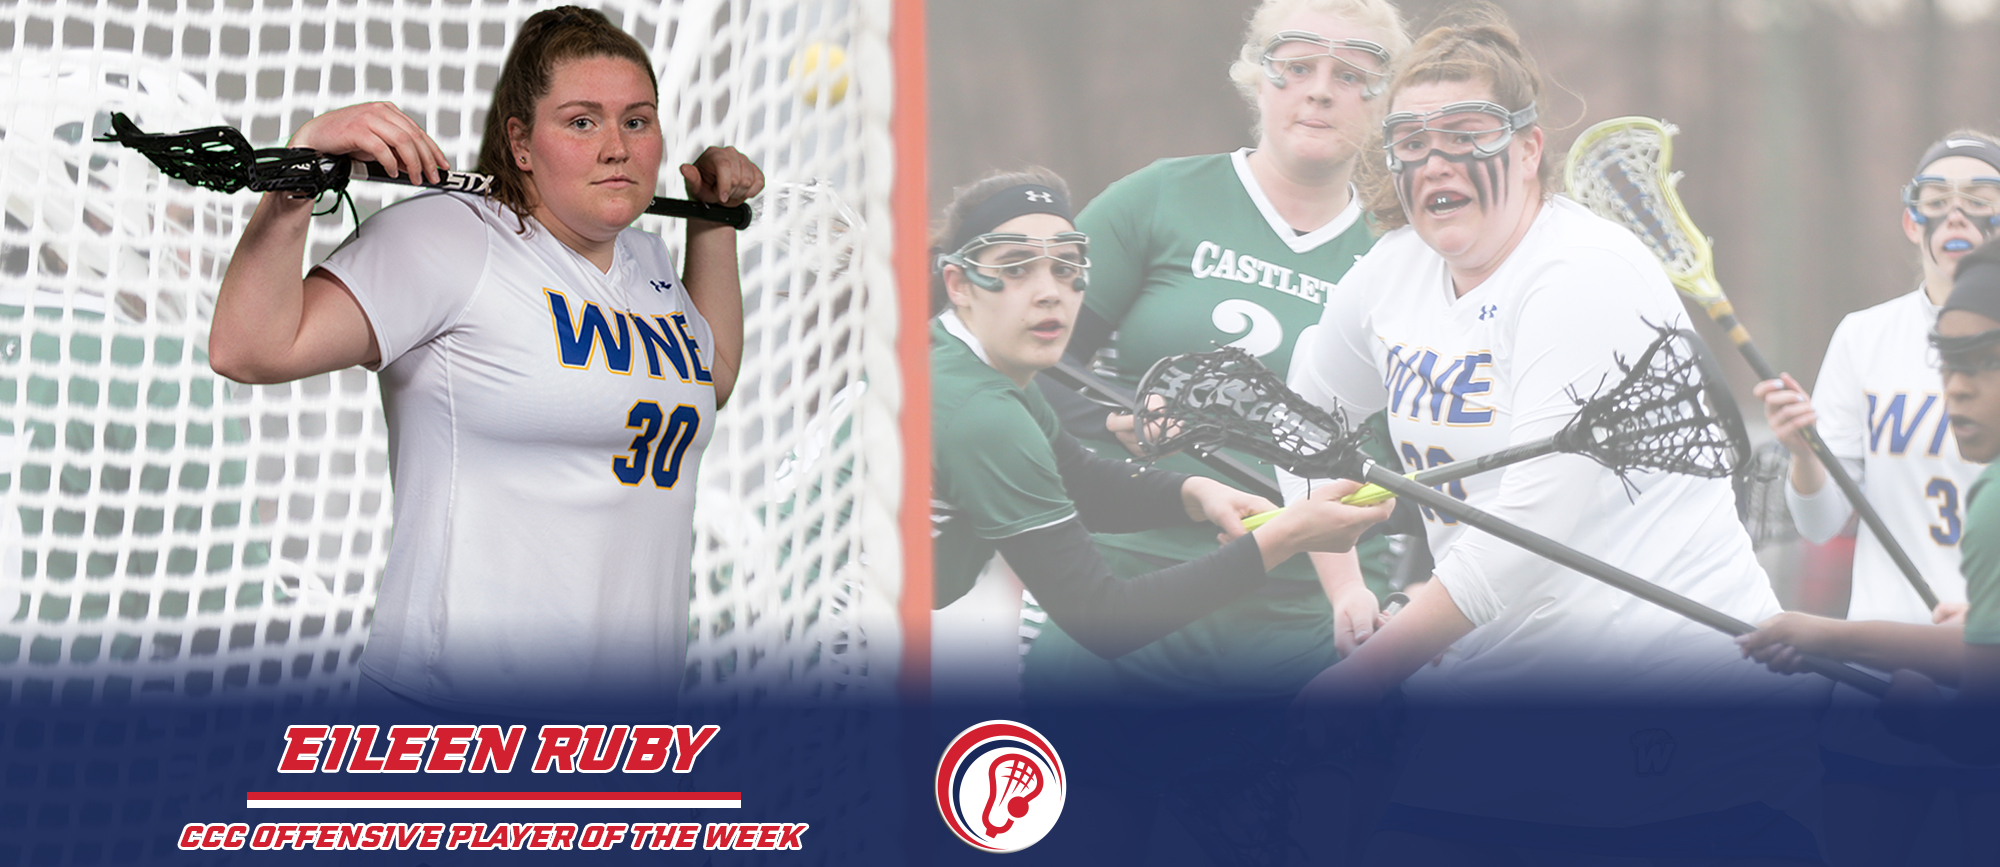 Eileen Ruby Recognized with Second Career CCC Offensive Player of the Week Award